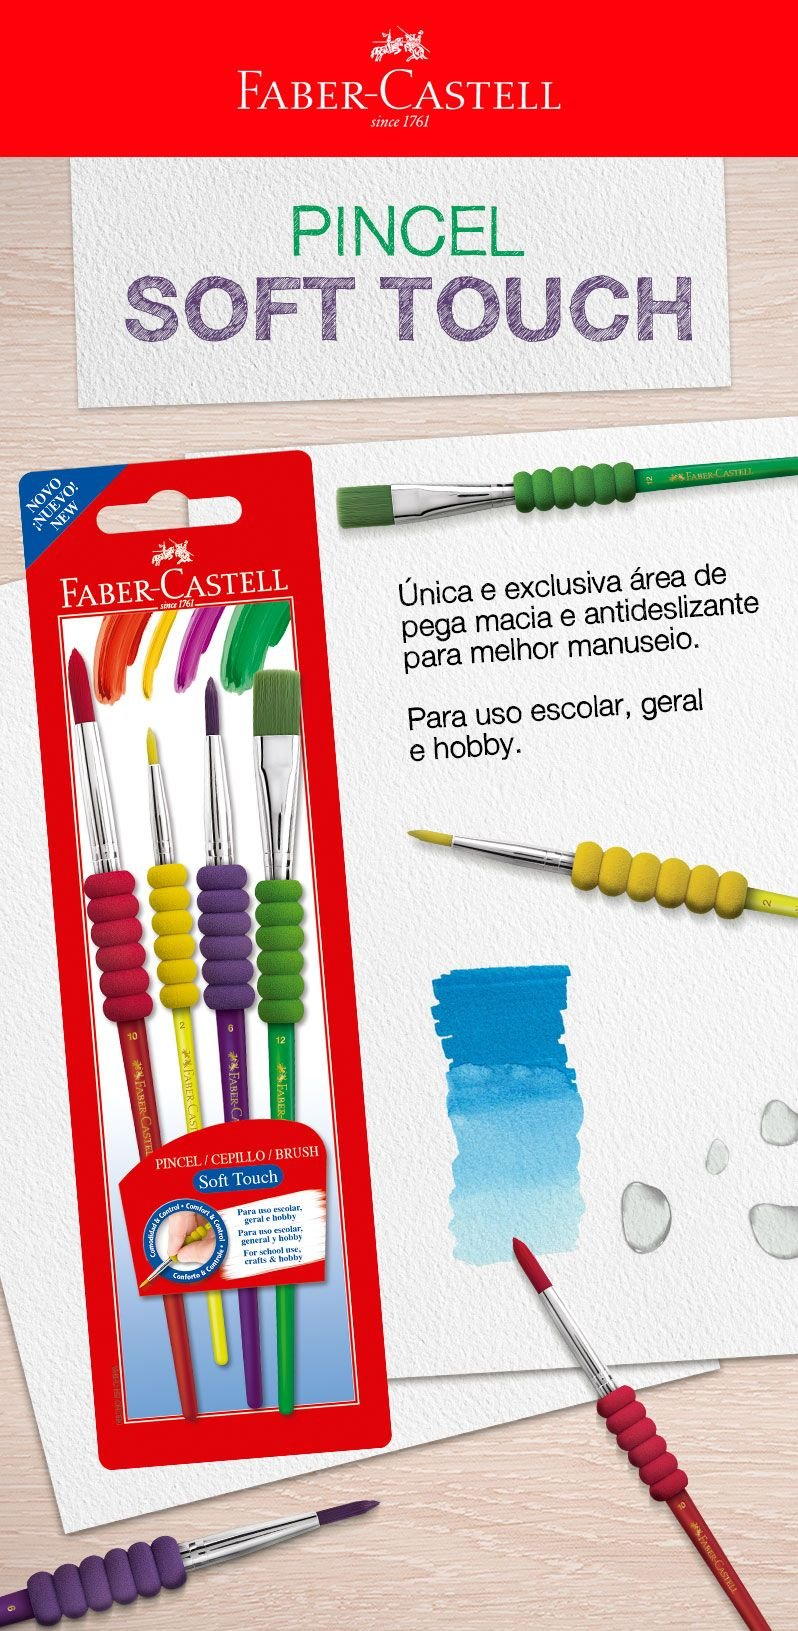 Kit p/pintura soft touch 181600 Faber Castell